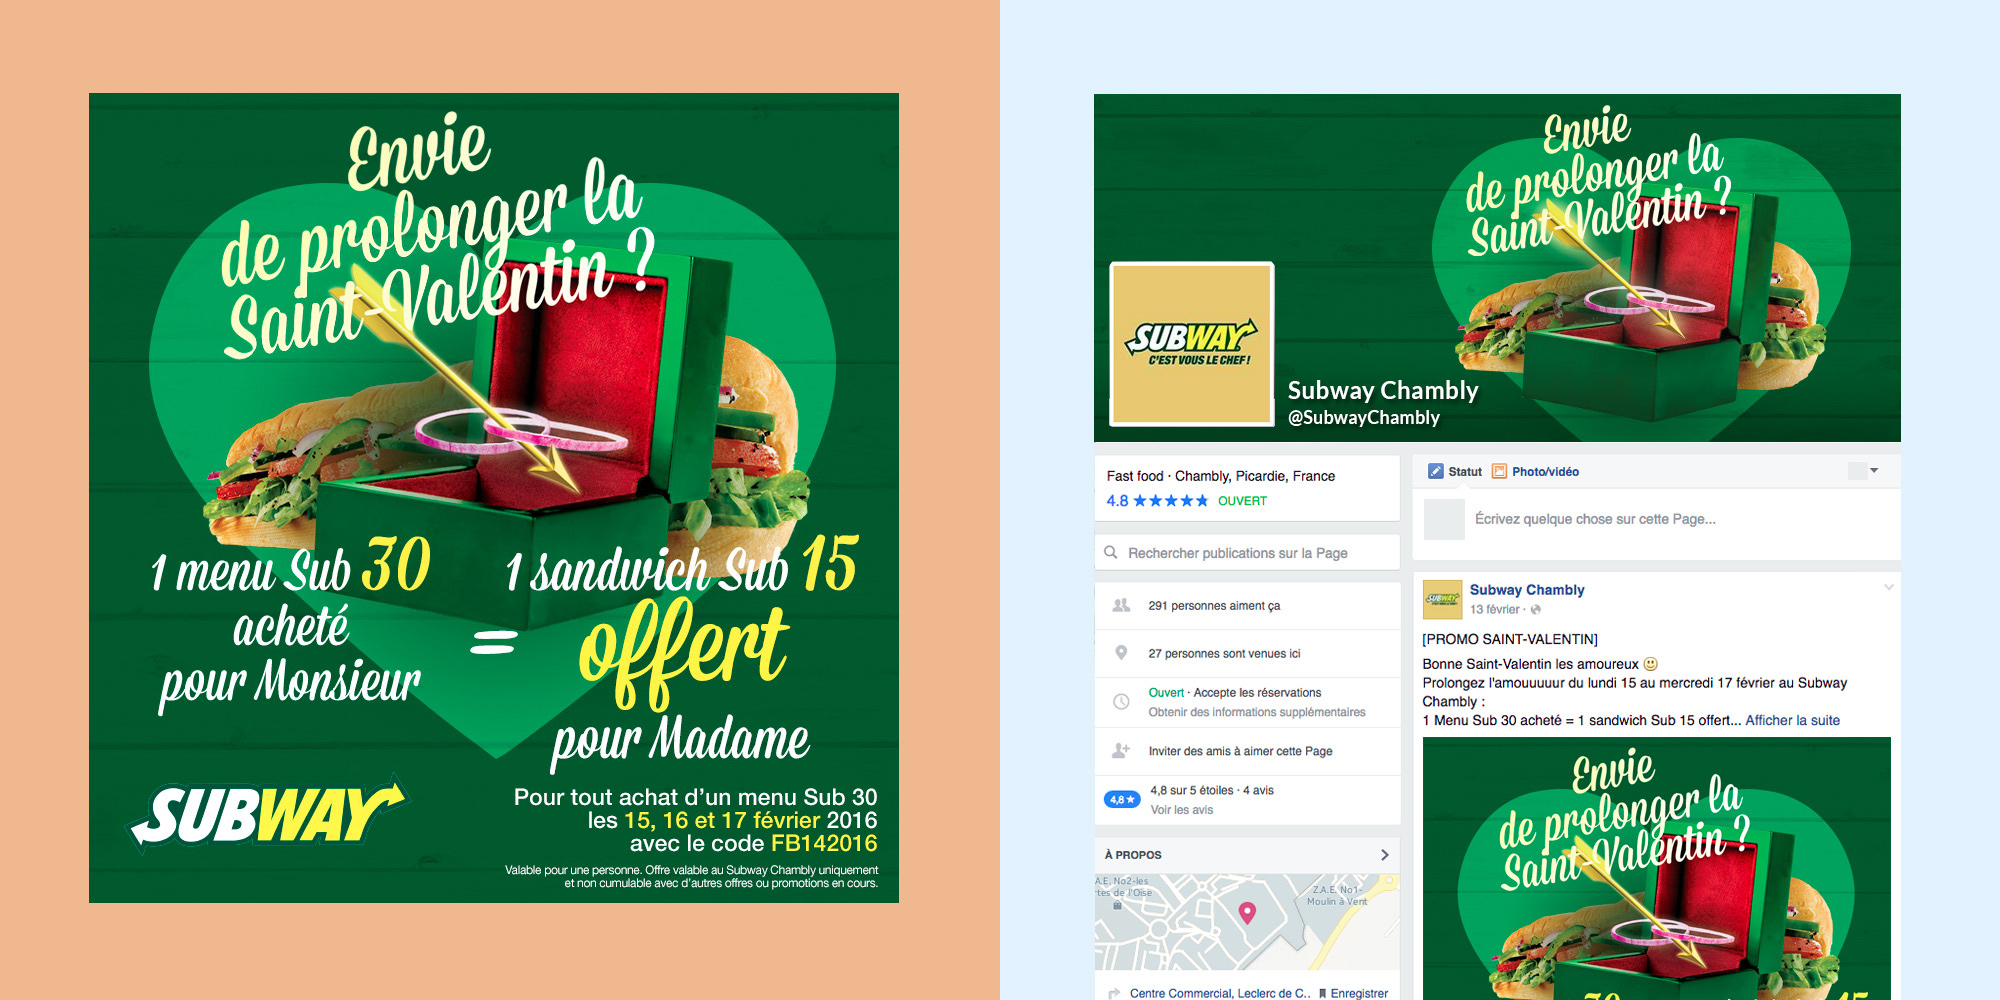 Subway - Saint-Valentin - Facebook - IDDP